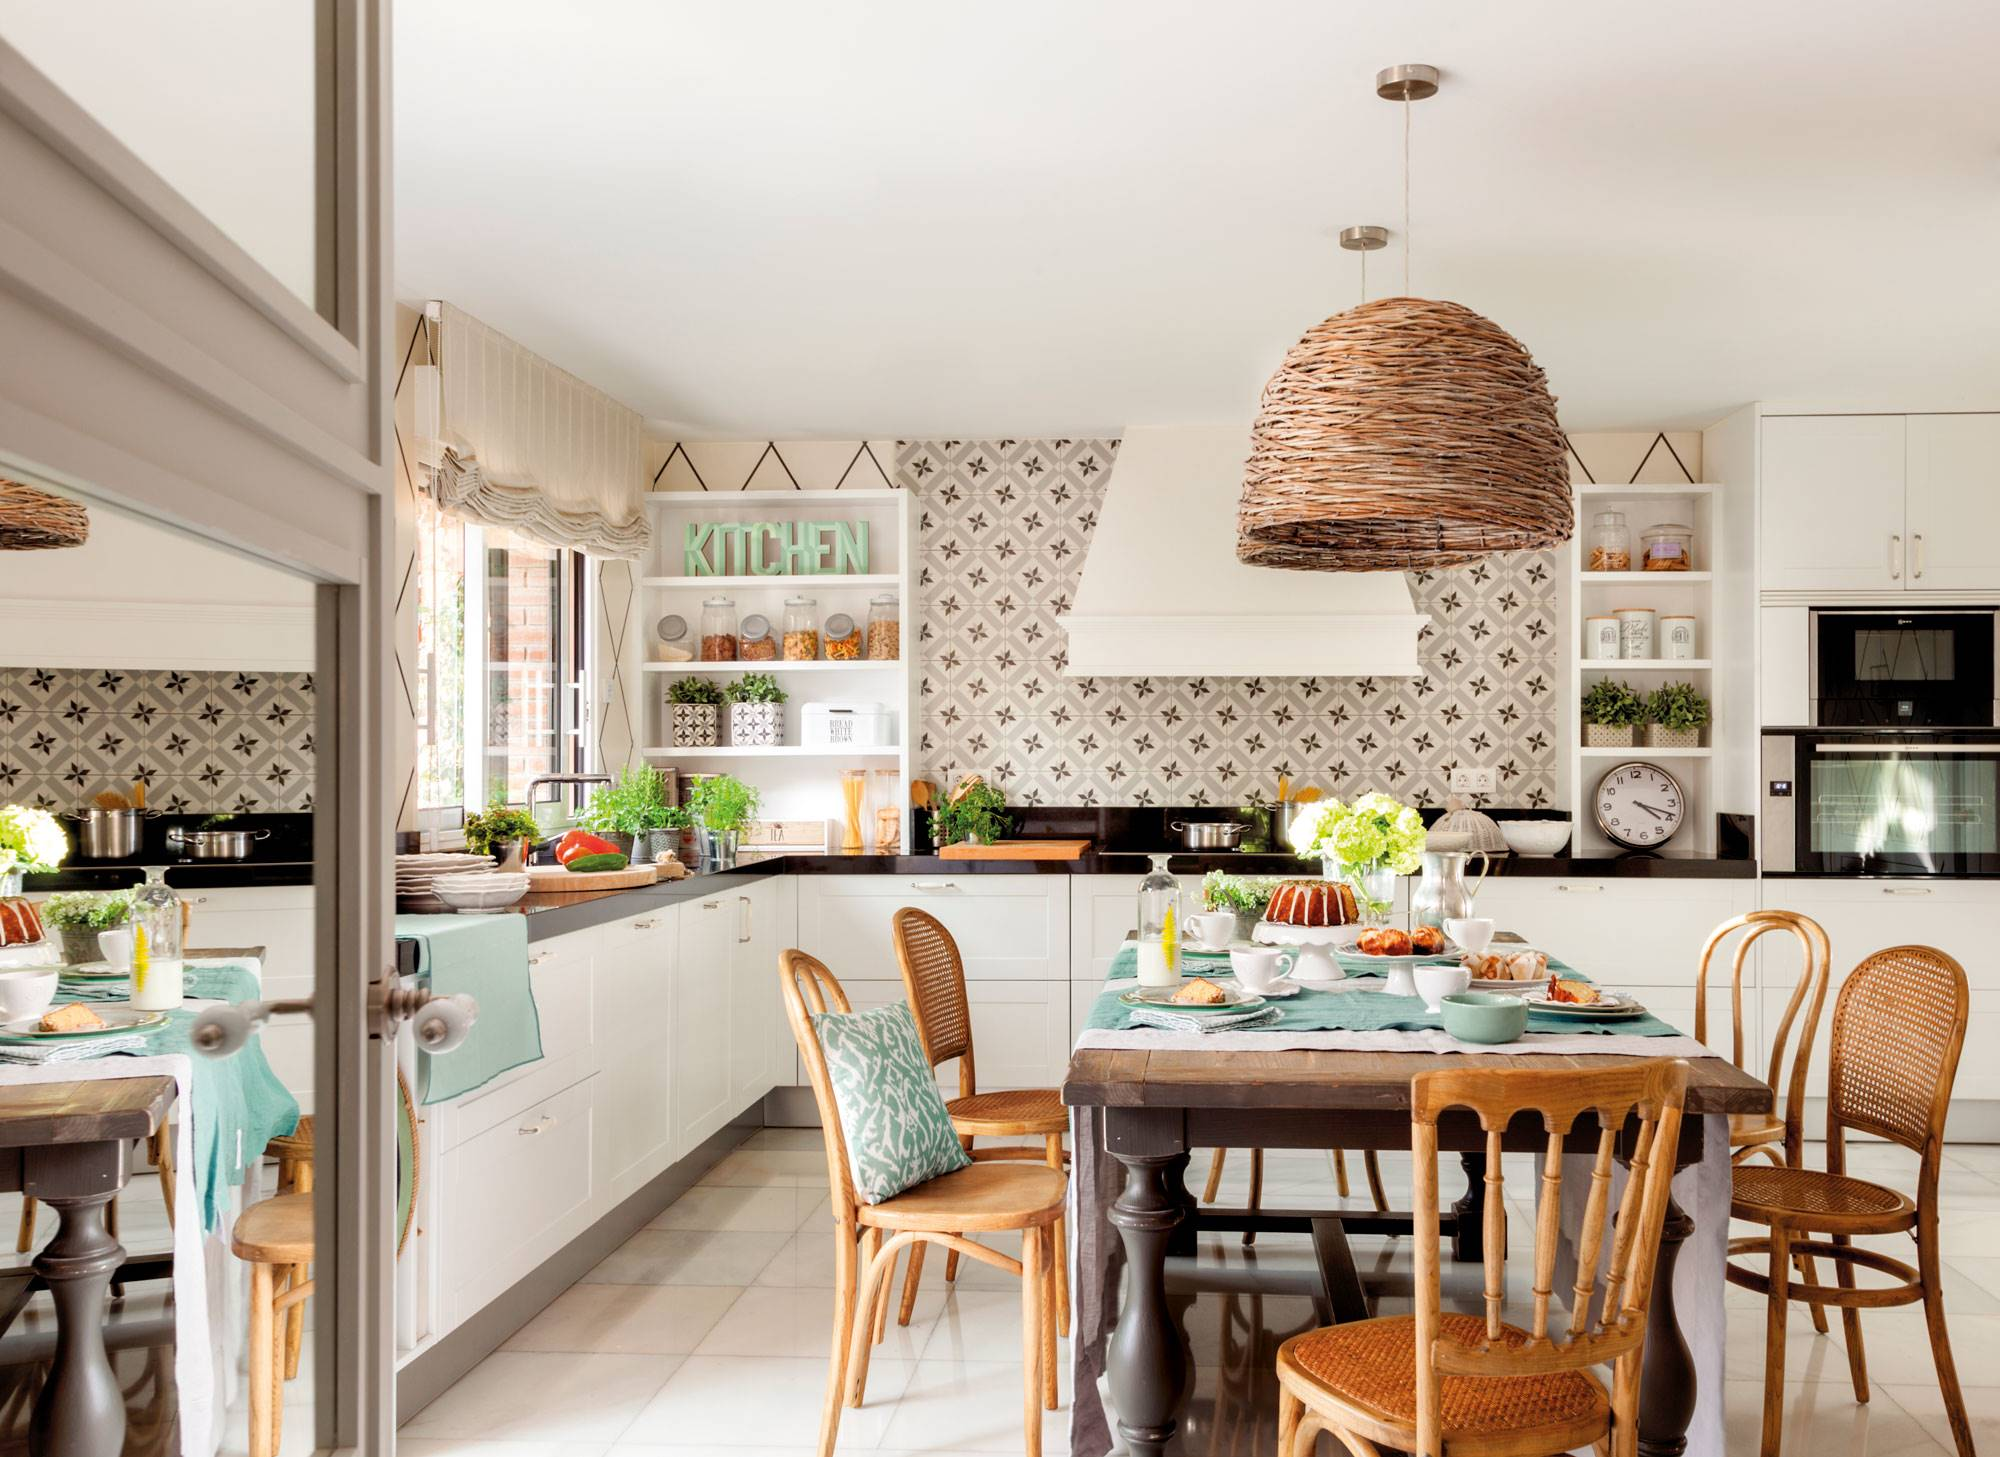 00455057. A kitchen as personal as it is familiar